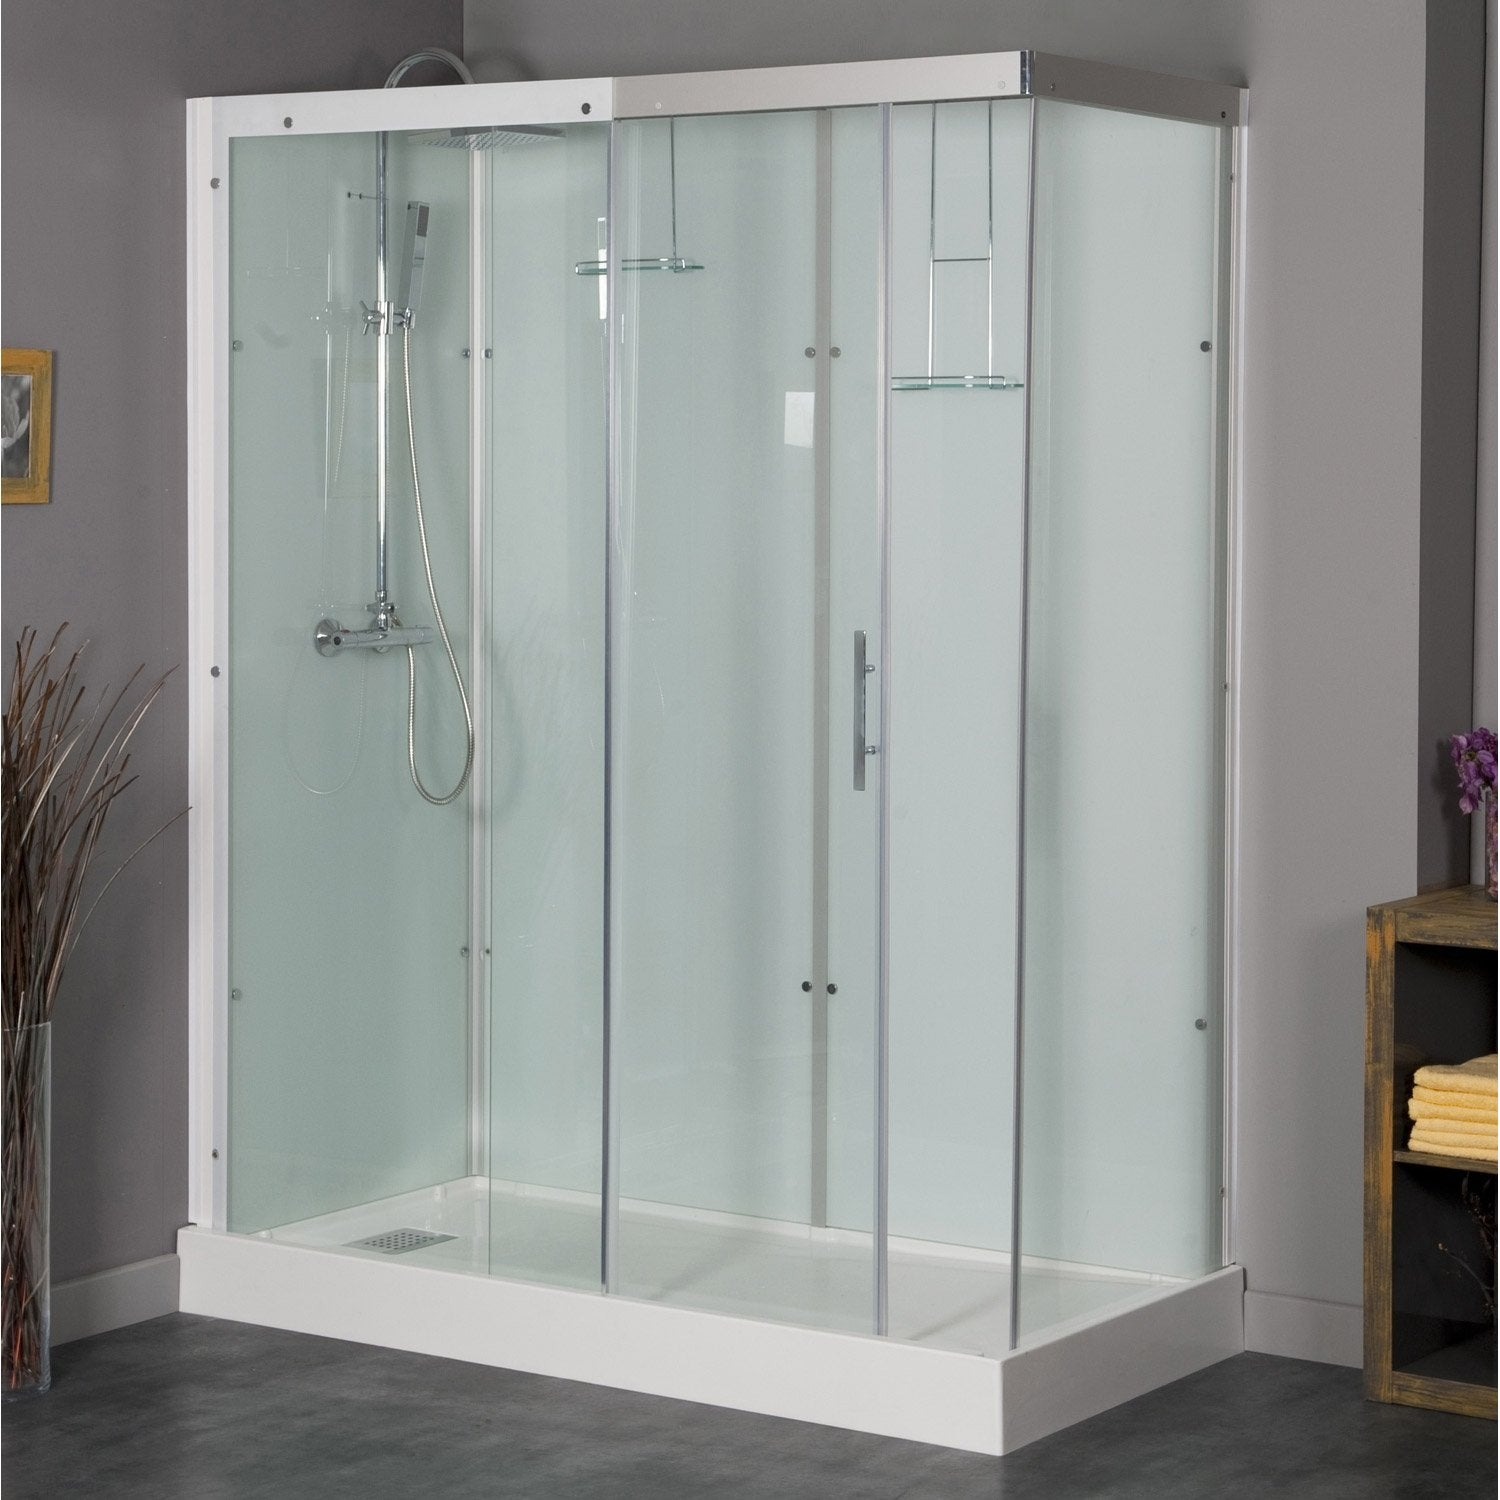 cabine de douche rectangulaire 120x90 cm thalaglass 2 thermo leroy merlin. Black Bedroom Furniture Sets. Home Design Ideas